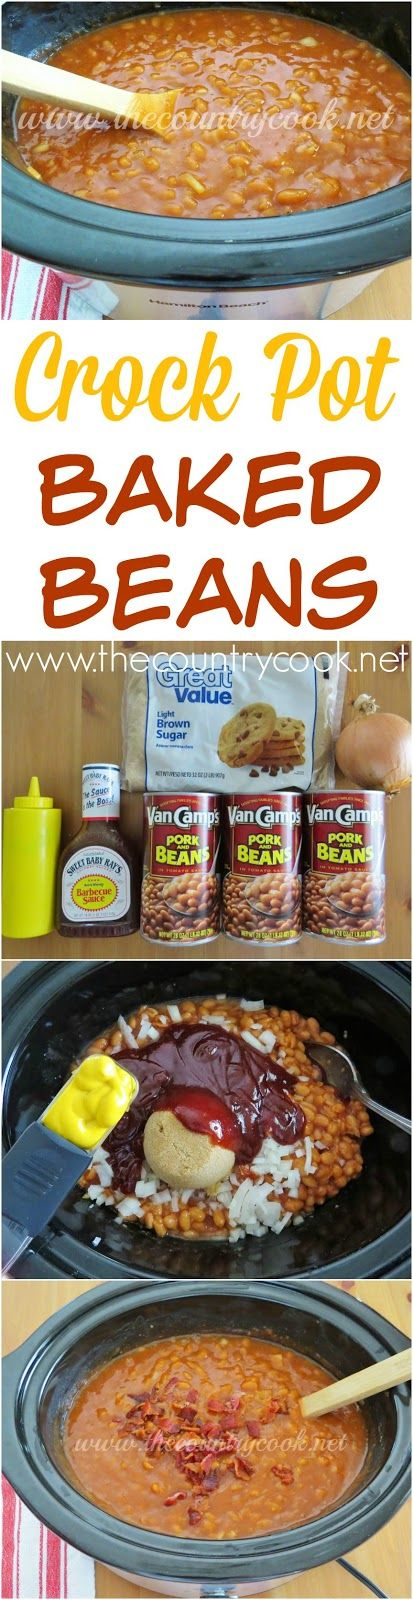 Crock Pot Baked Beans recipe from The Country Cook. Love that his cooks itself and I can keep it warm for everyone while they serve themselves. The flavor gets better the longer it cooks! #LaborDay #MemorialDay #BBQ #sides #recipes